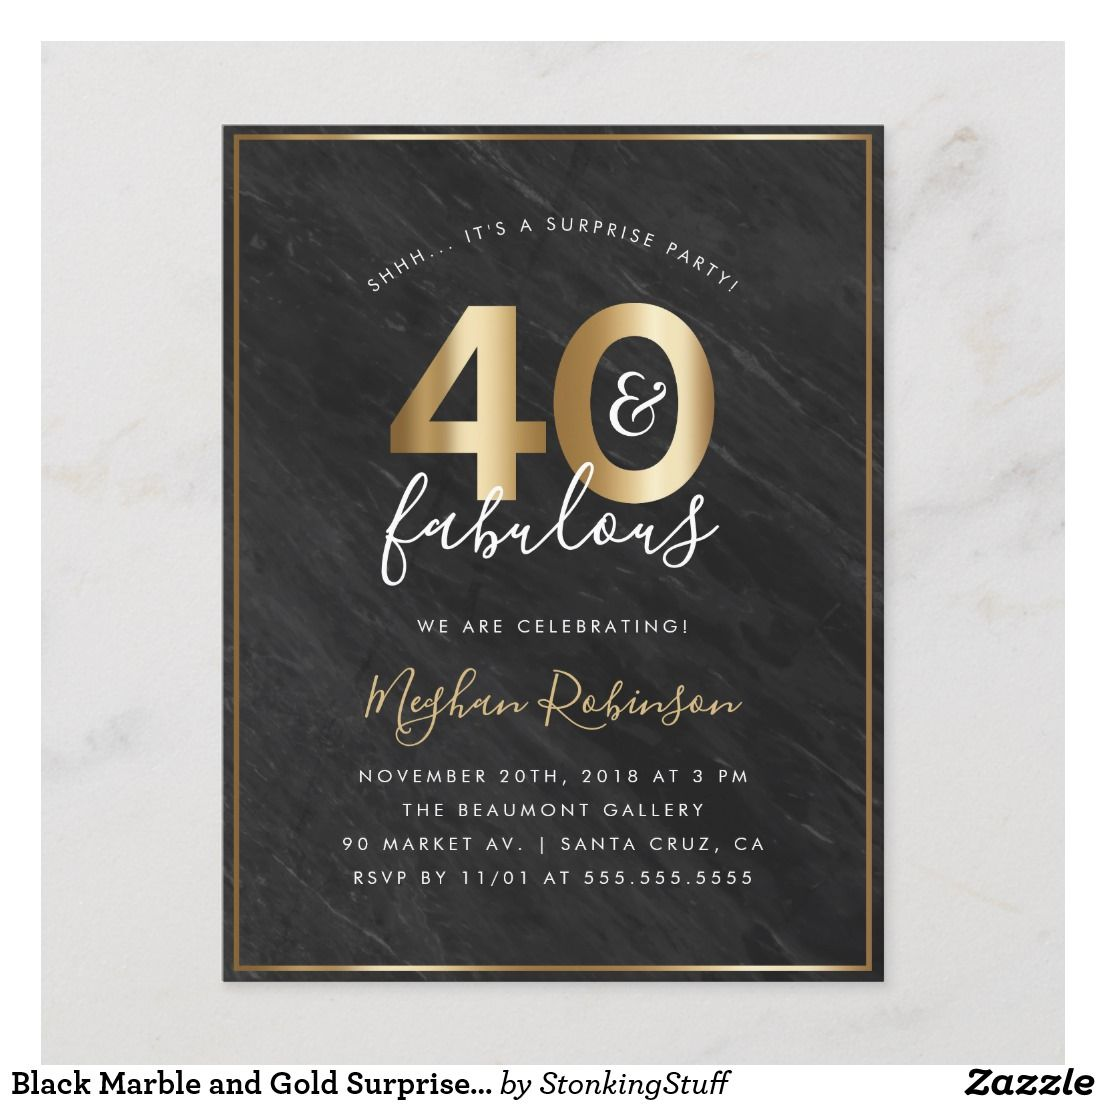 Black Marble And Gold Surprise 40th Birthday Party Invitation Postcard Create Your Own Glamorous